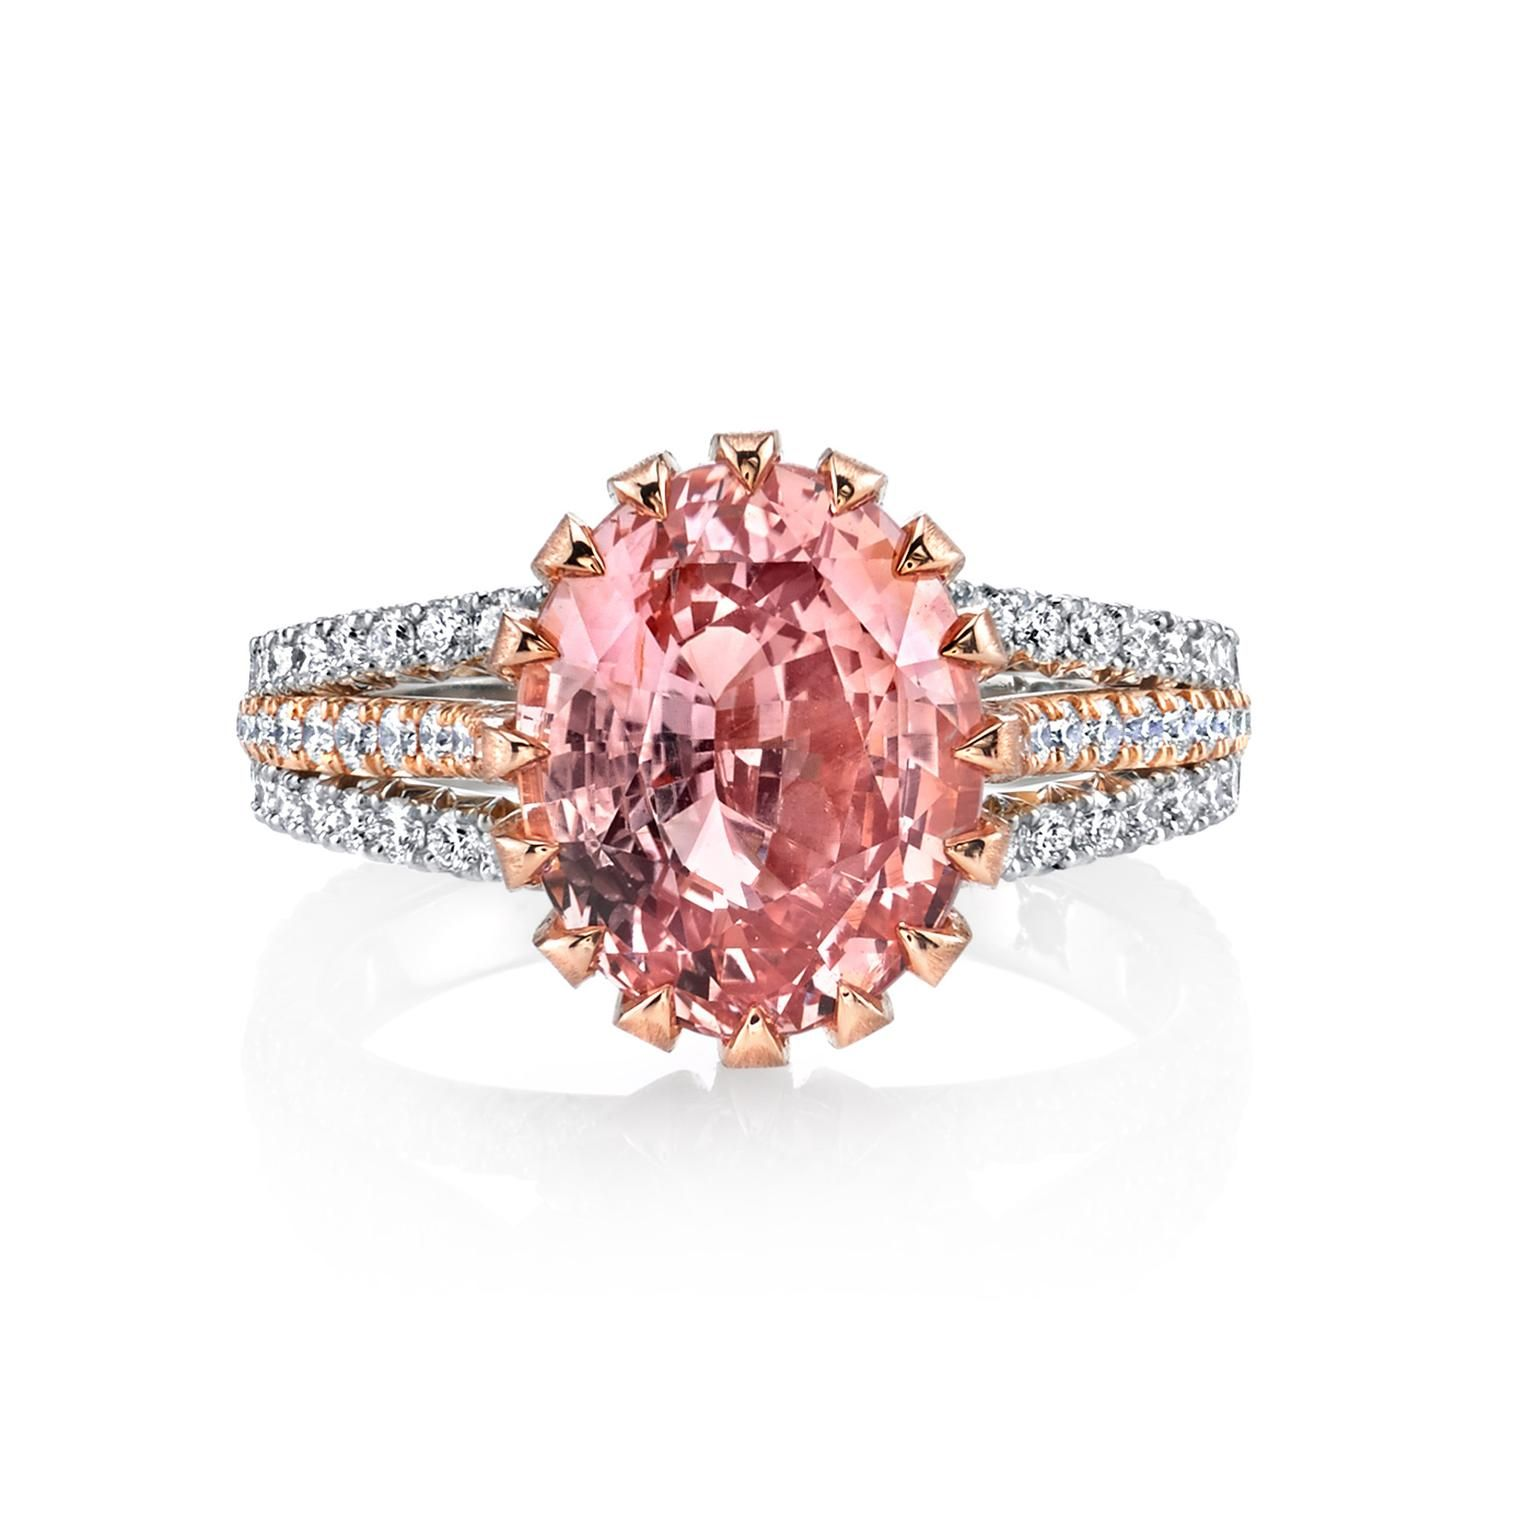 Padparadscha sapphire ring with diamonds | Pinterest | Ring ...